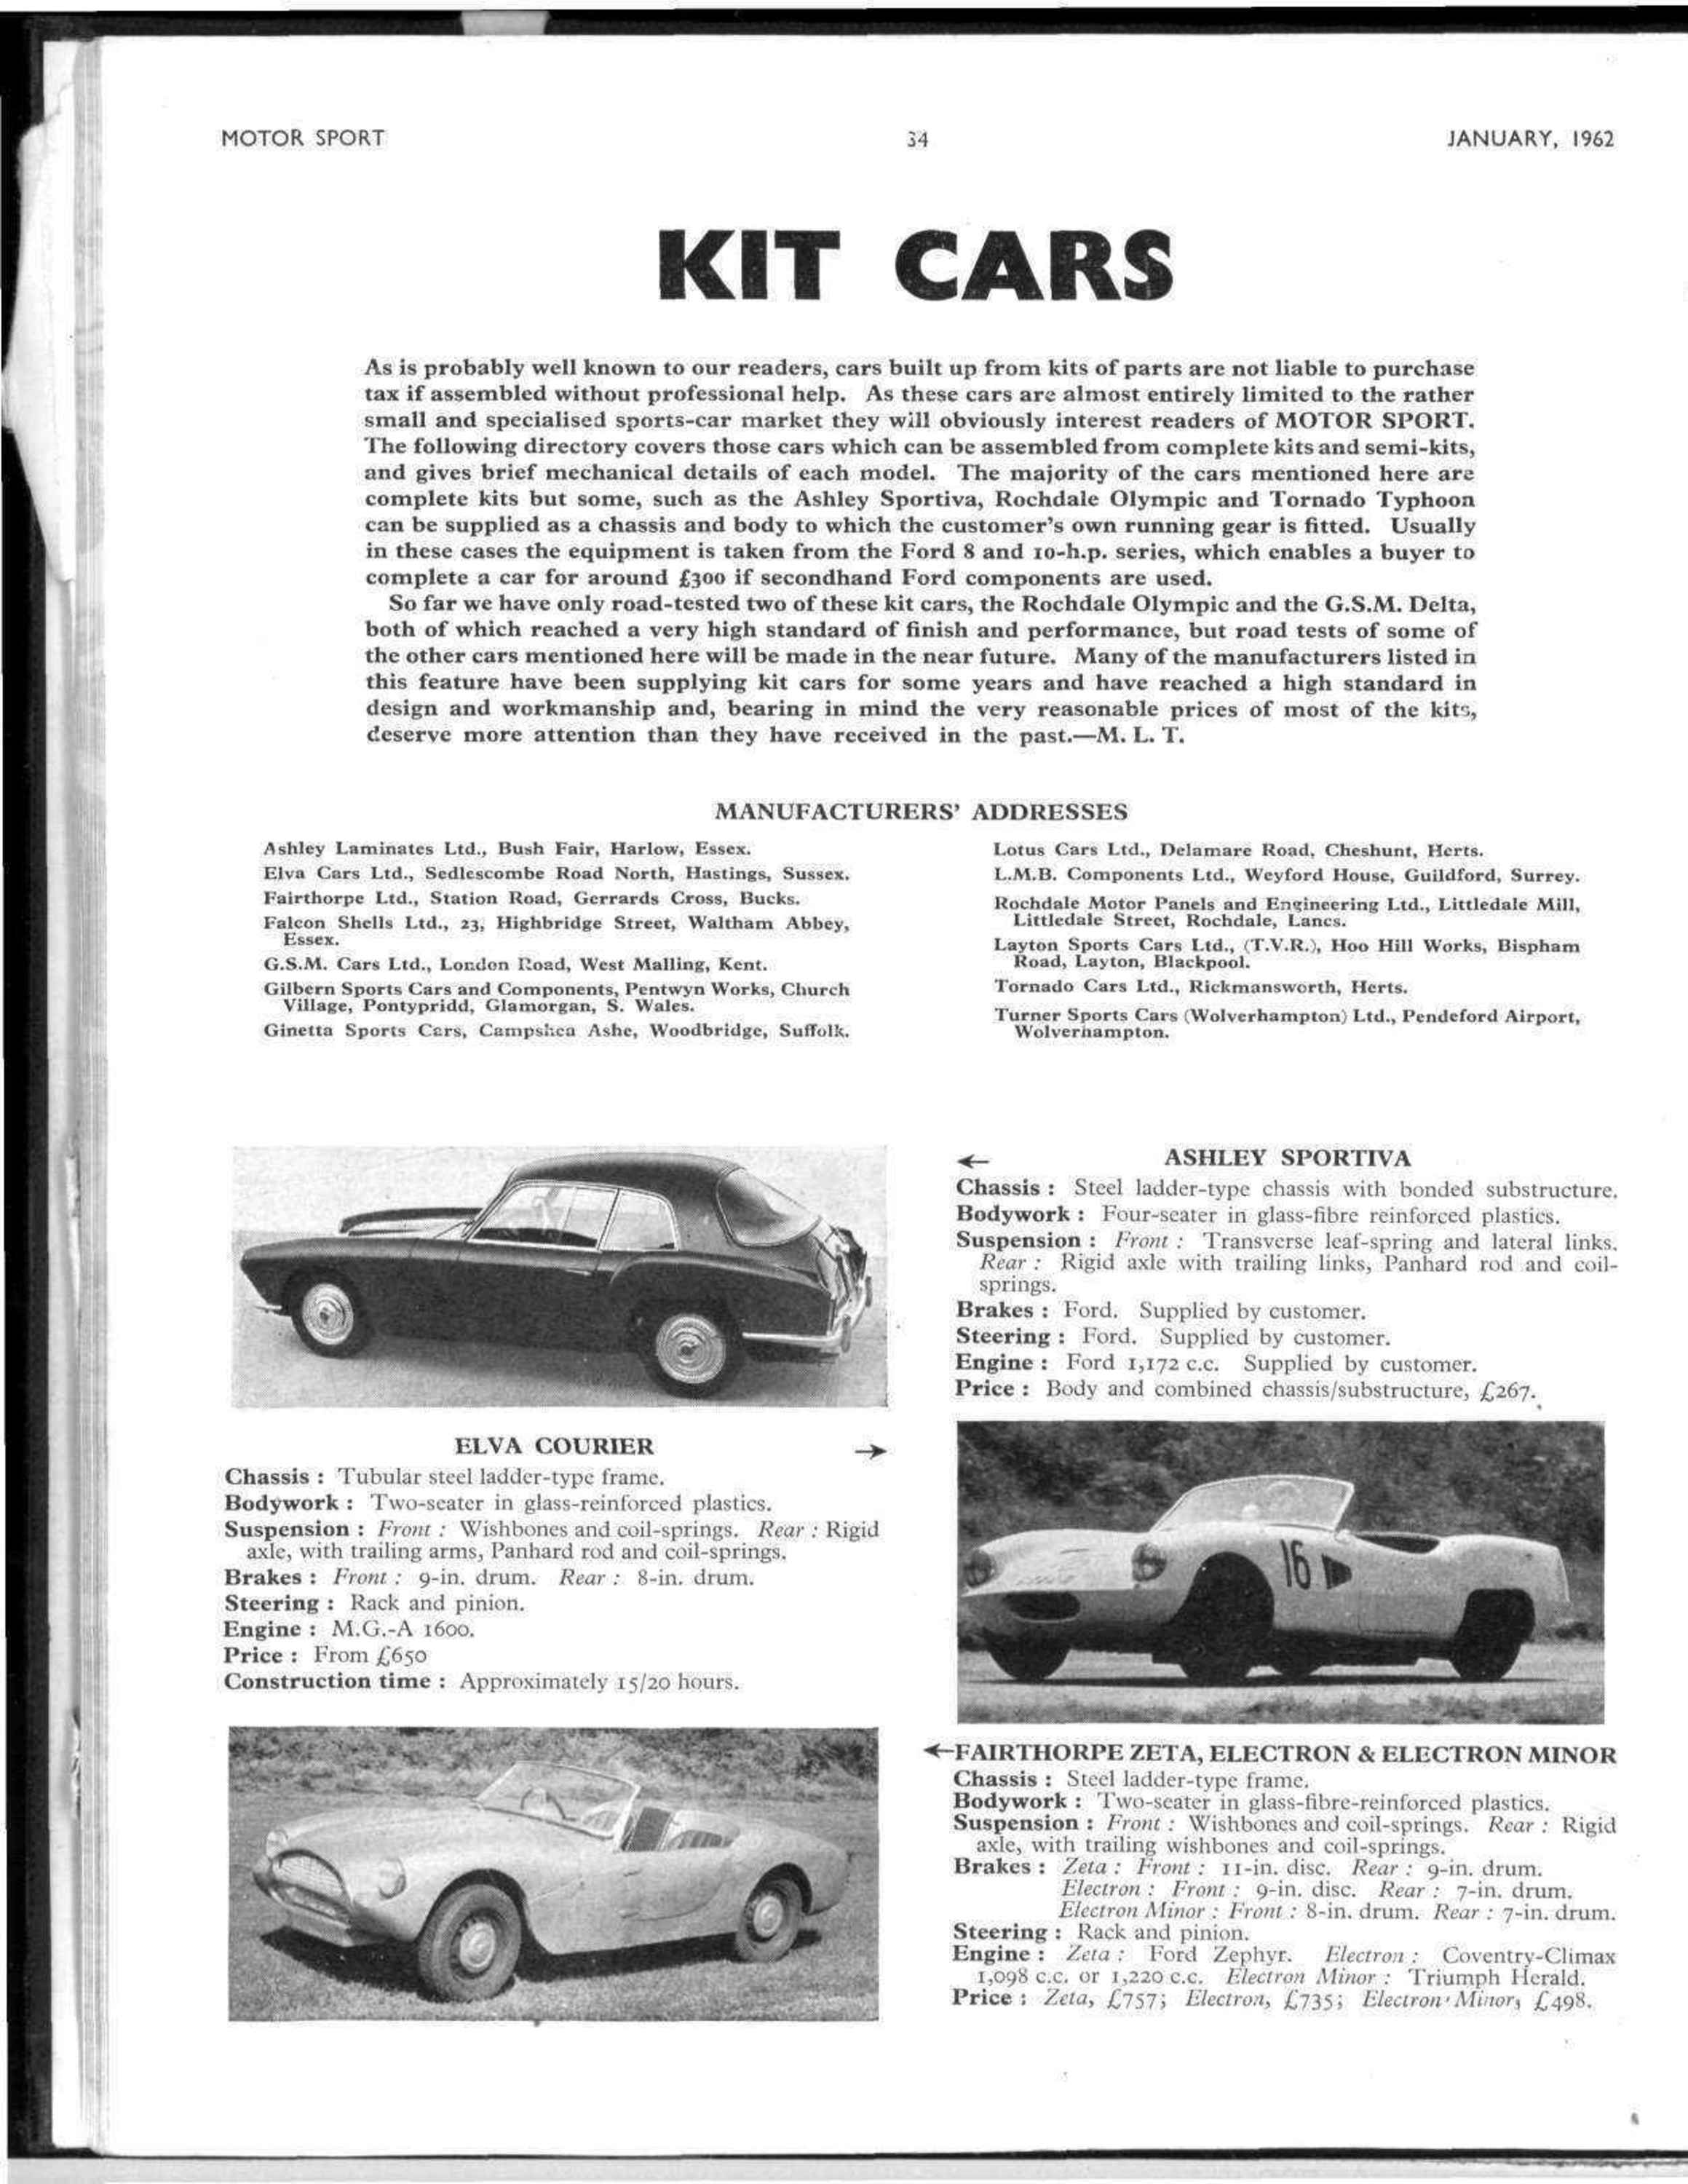 Kit Cars | Motor Sport Magazine Archive